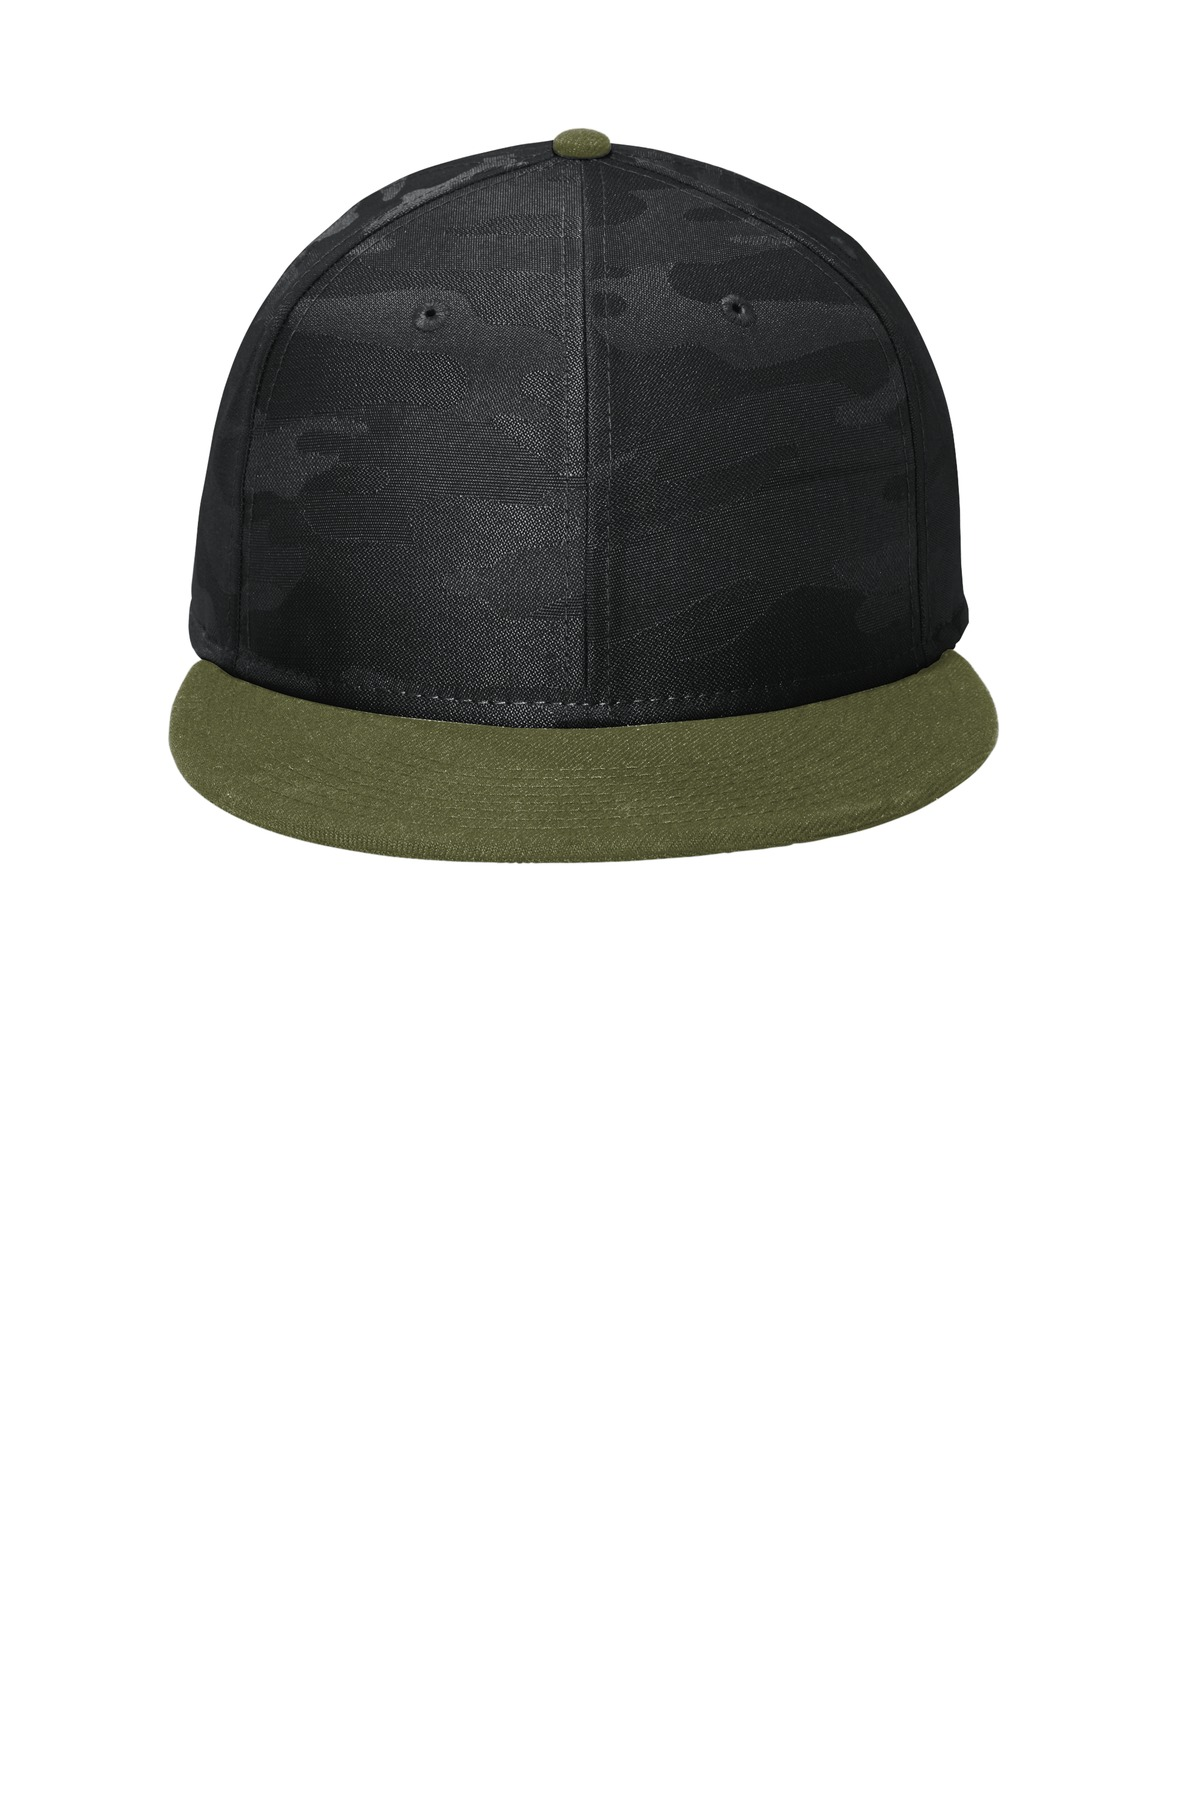 New Era Camo Flat Bill Snapback Cap NE407